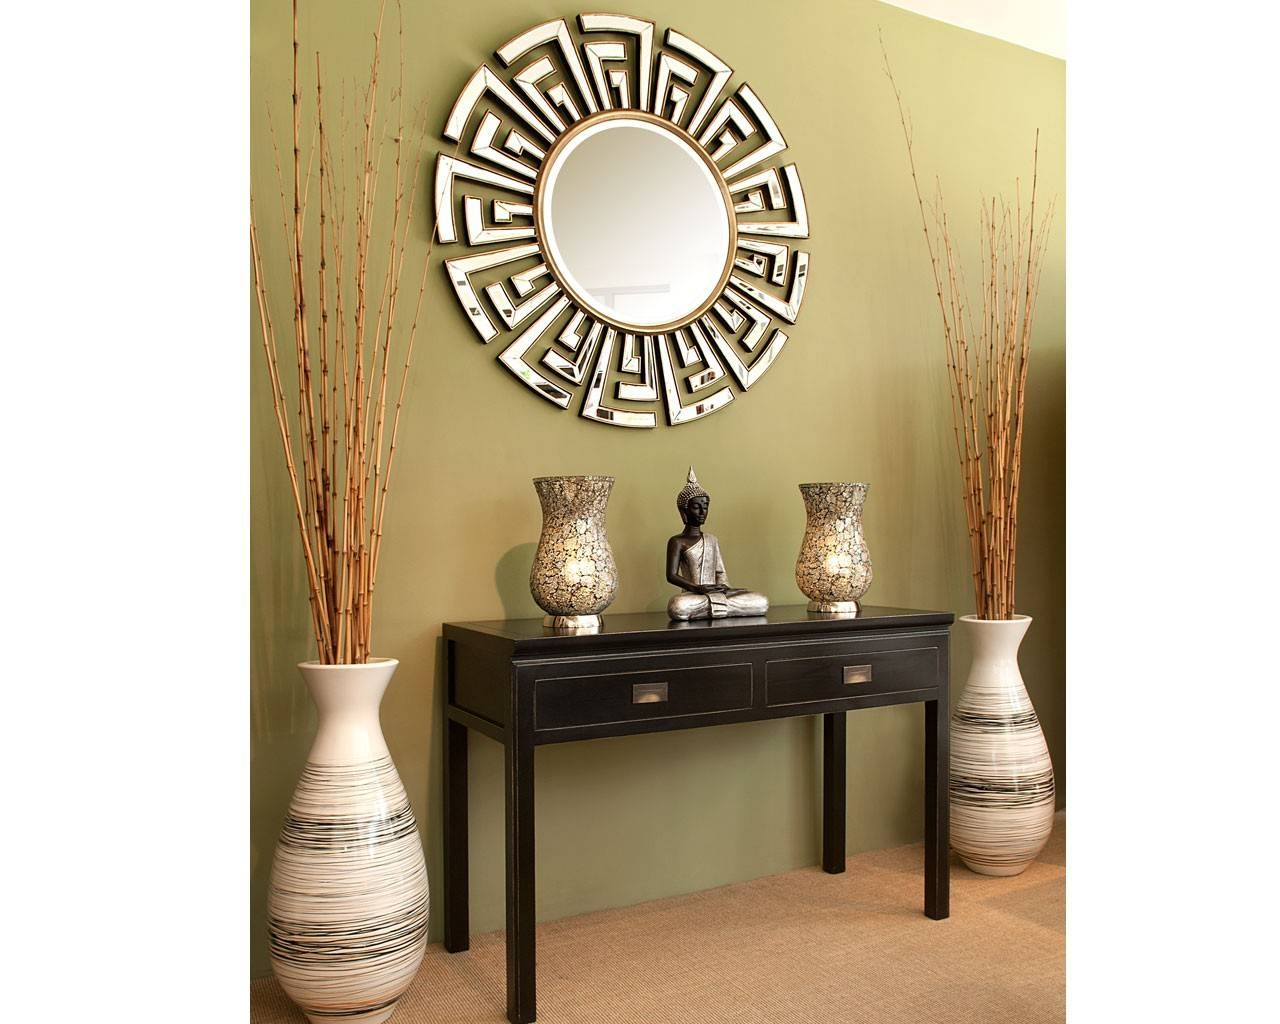 Contemporary Art Deco Round Mirror | Statement Circular Mirrors regarding Round Art Deco Mirrors (Image 7 of 15)